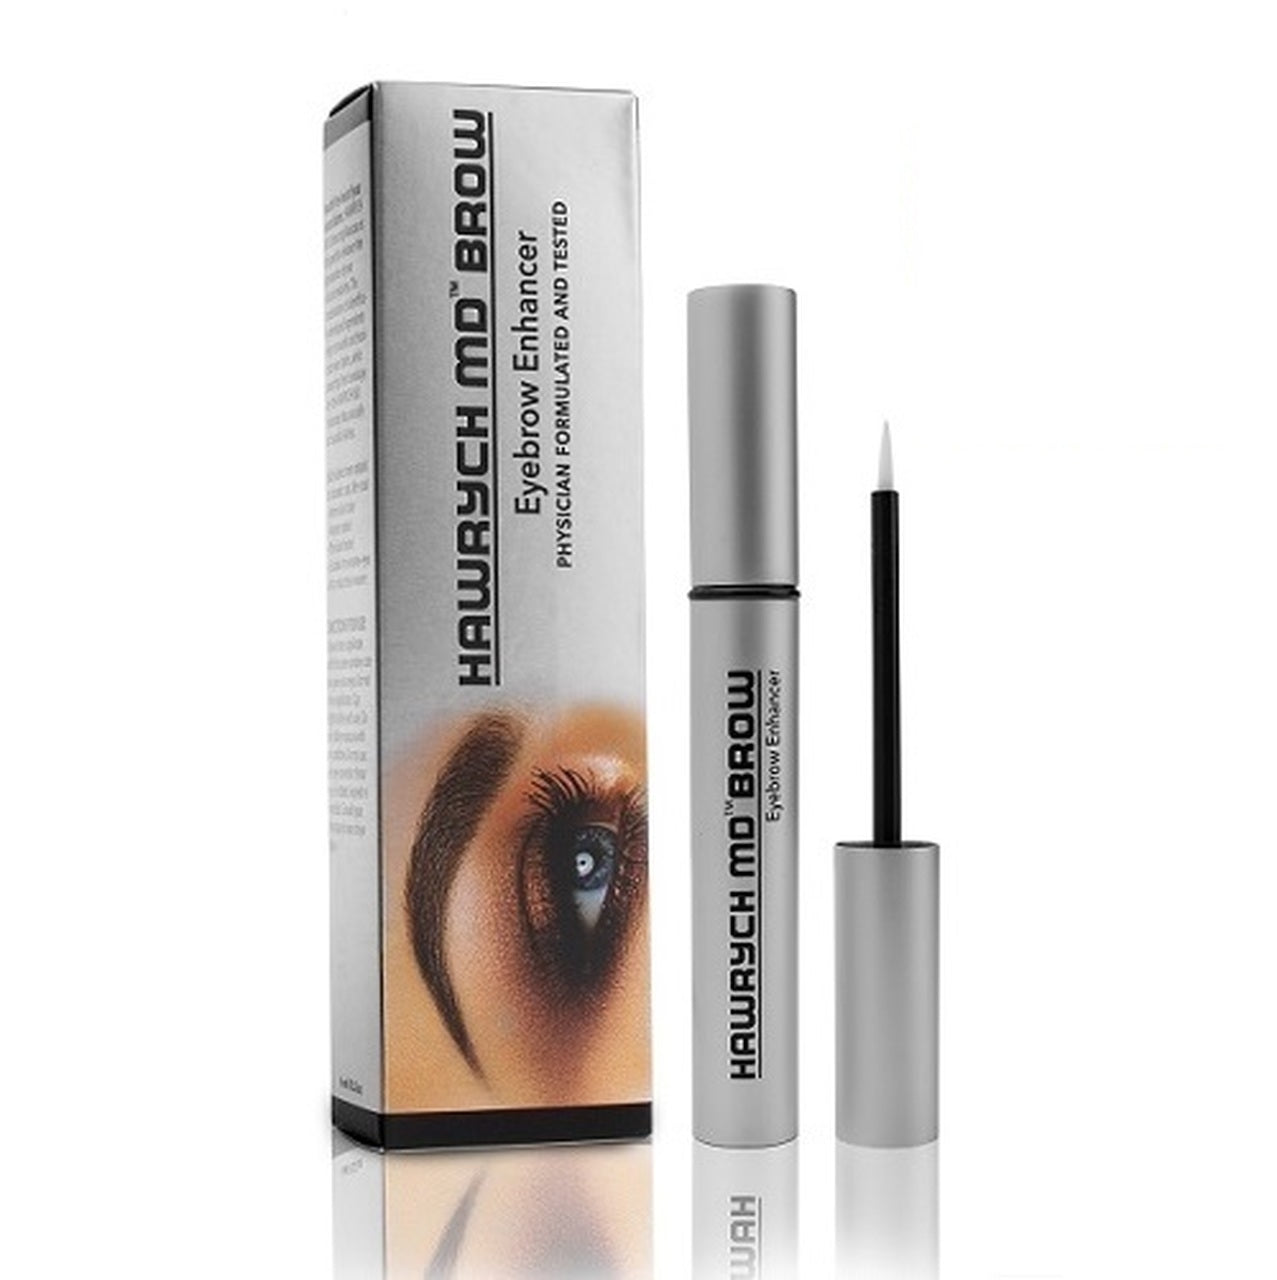 HAWRYCH MD Brow Enhancer | 5 ml. Retail